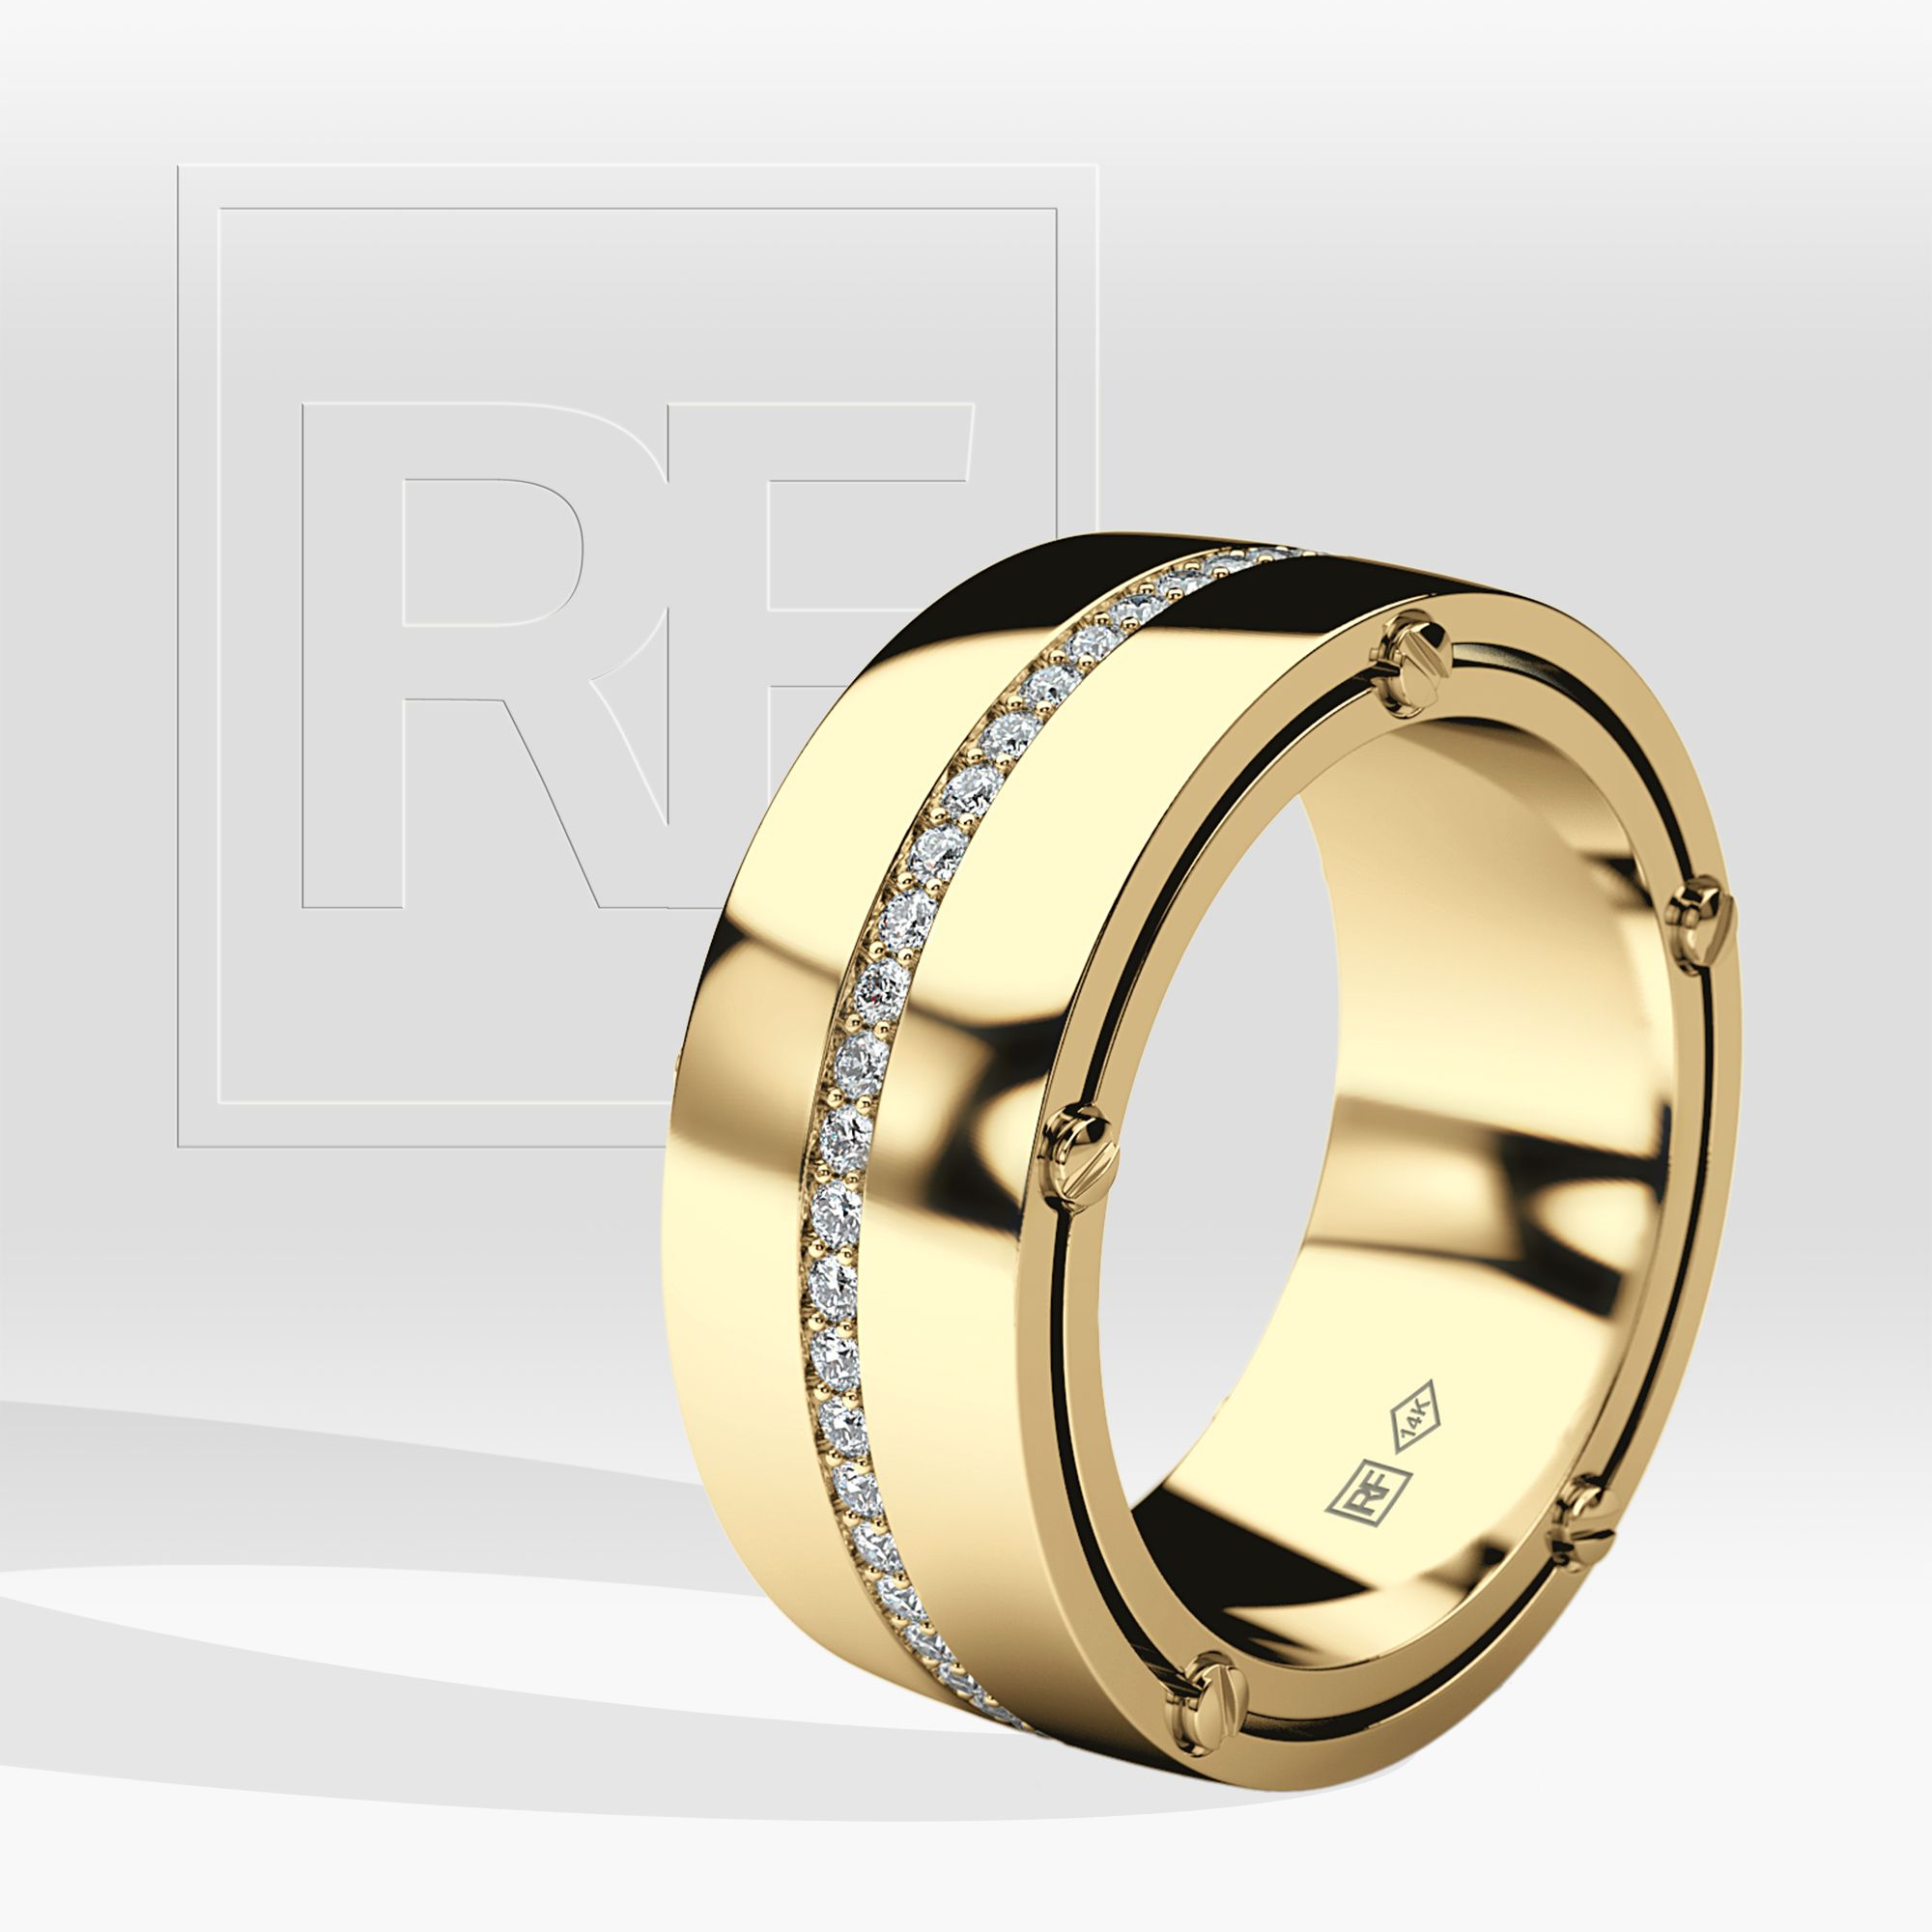 Franklin Comfort Fit Mens Gold Wedding Band With 0 50ct Diamonds Wide Version Mens Gold Wedding Band Mens Diamond Wedding Bands Diamond Wedding Bands